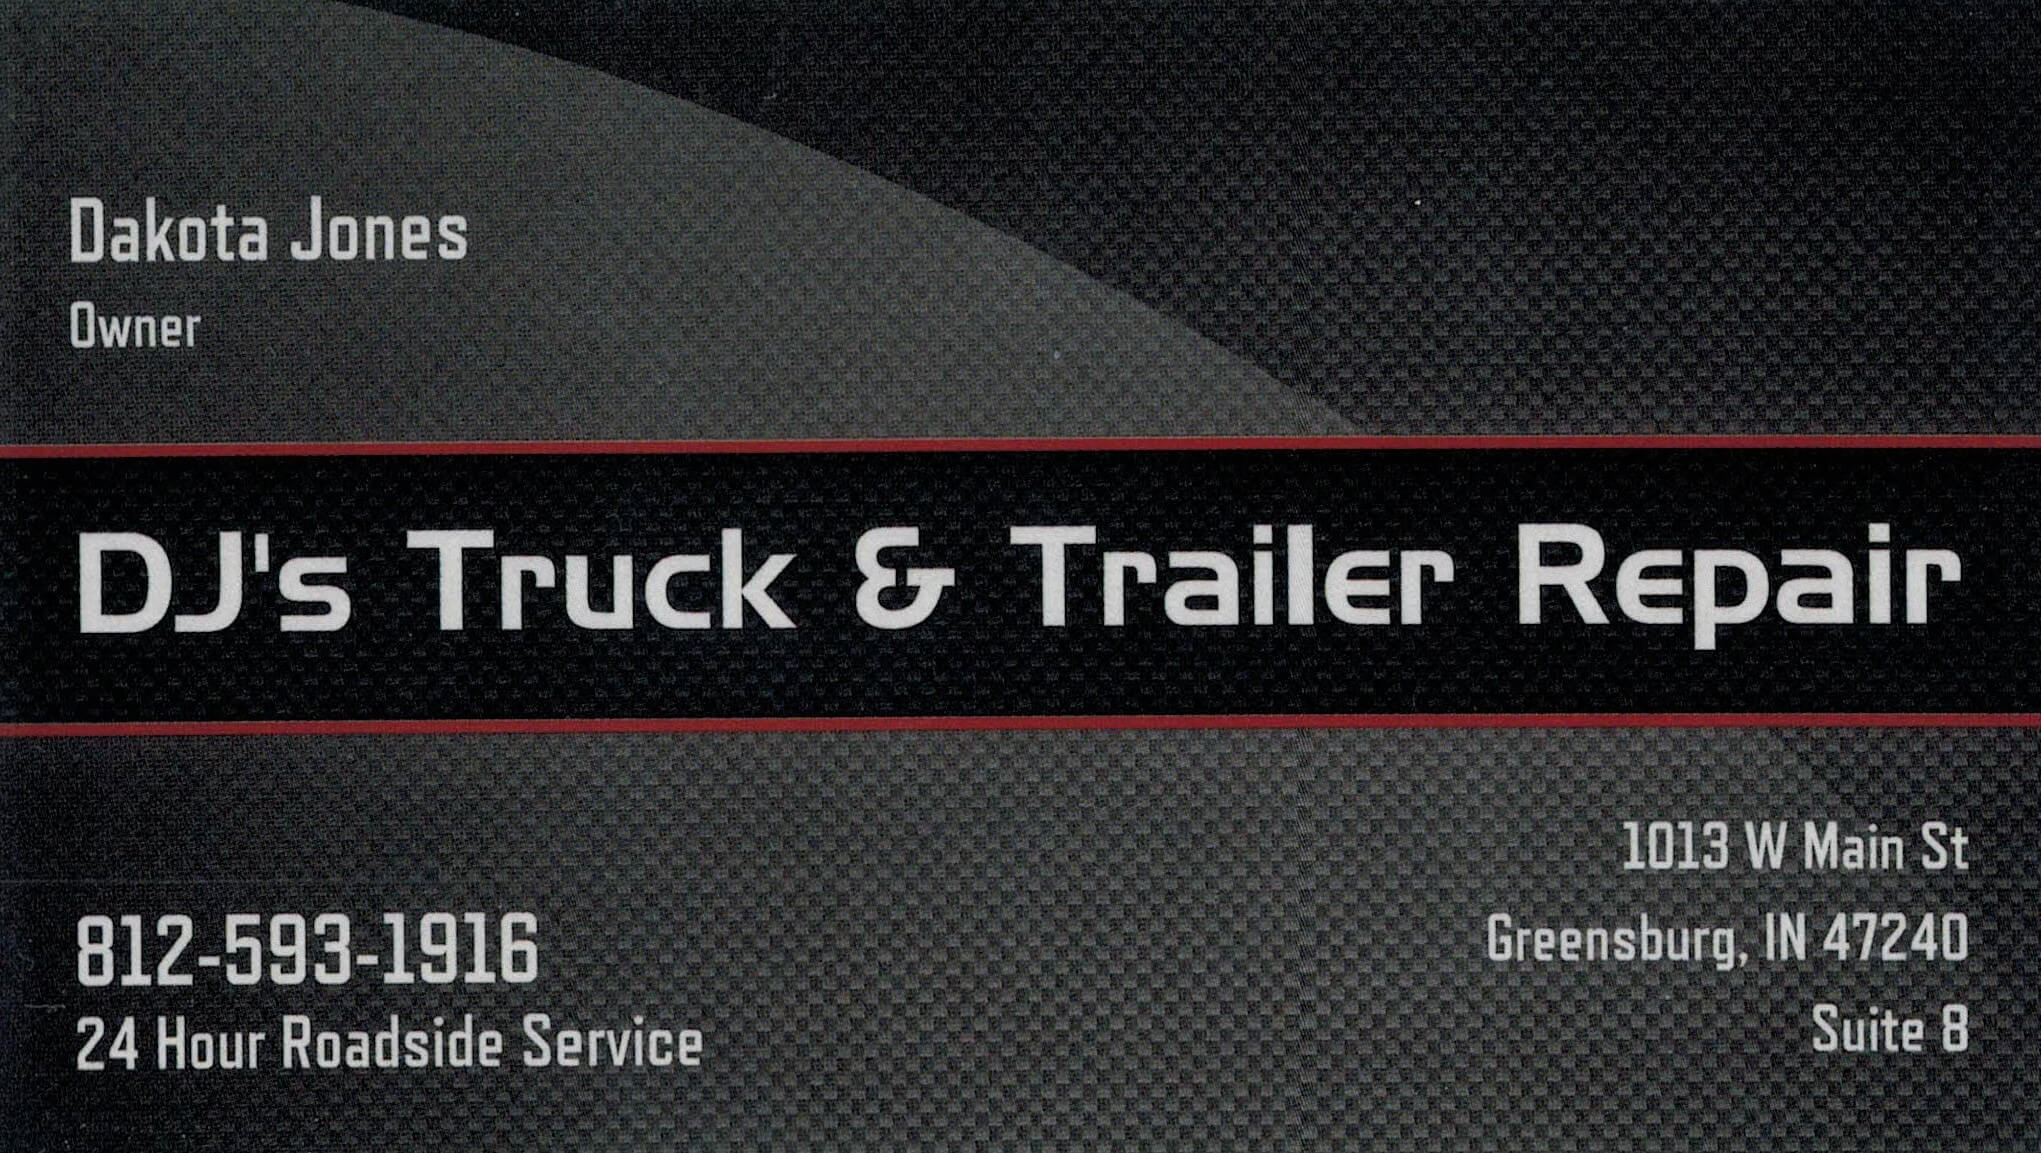 DJ's Truck & Trailer Repair LLC Logo